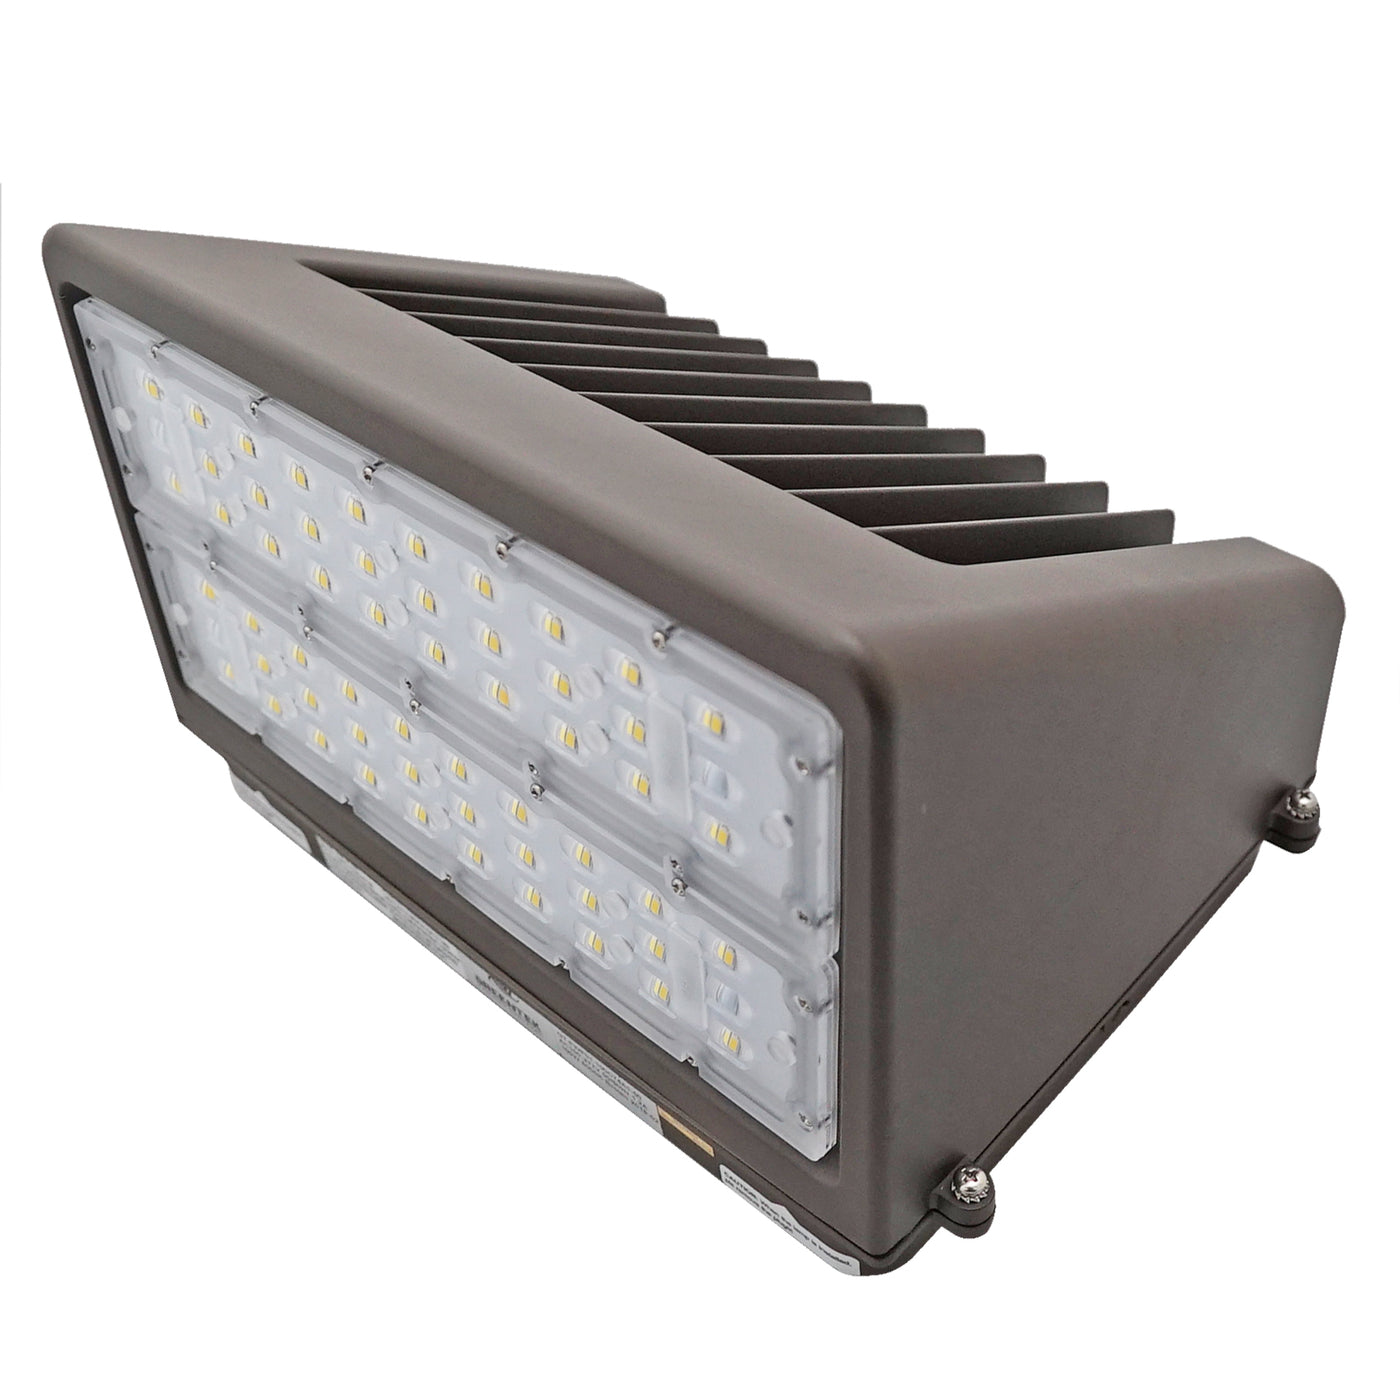 Led Wall Pack Green: Low Priced Full Cutoff Wall Pack Fixtures